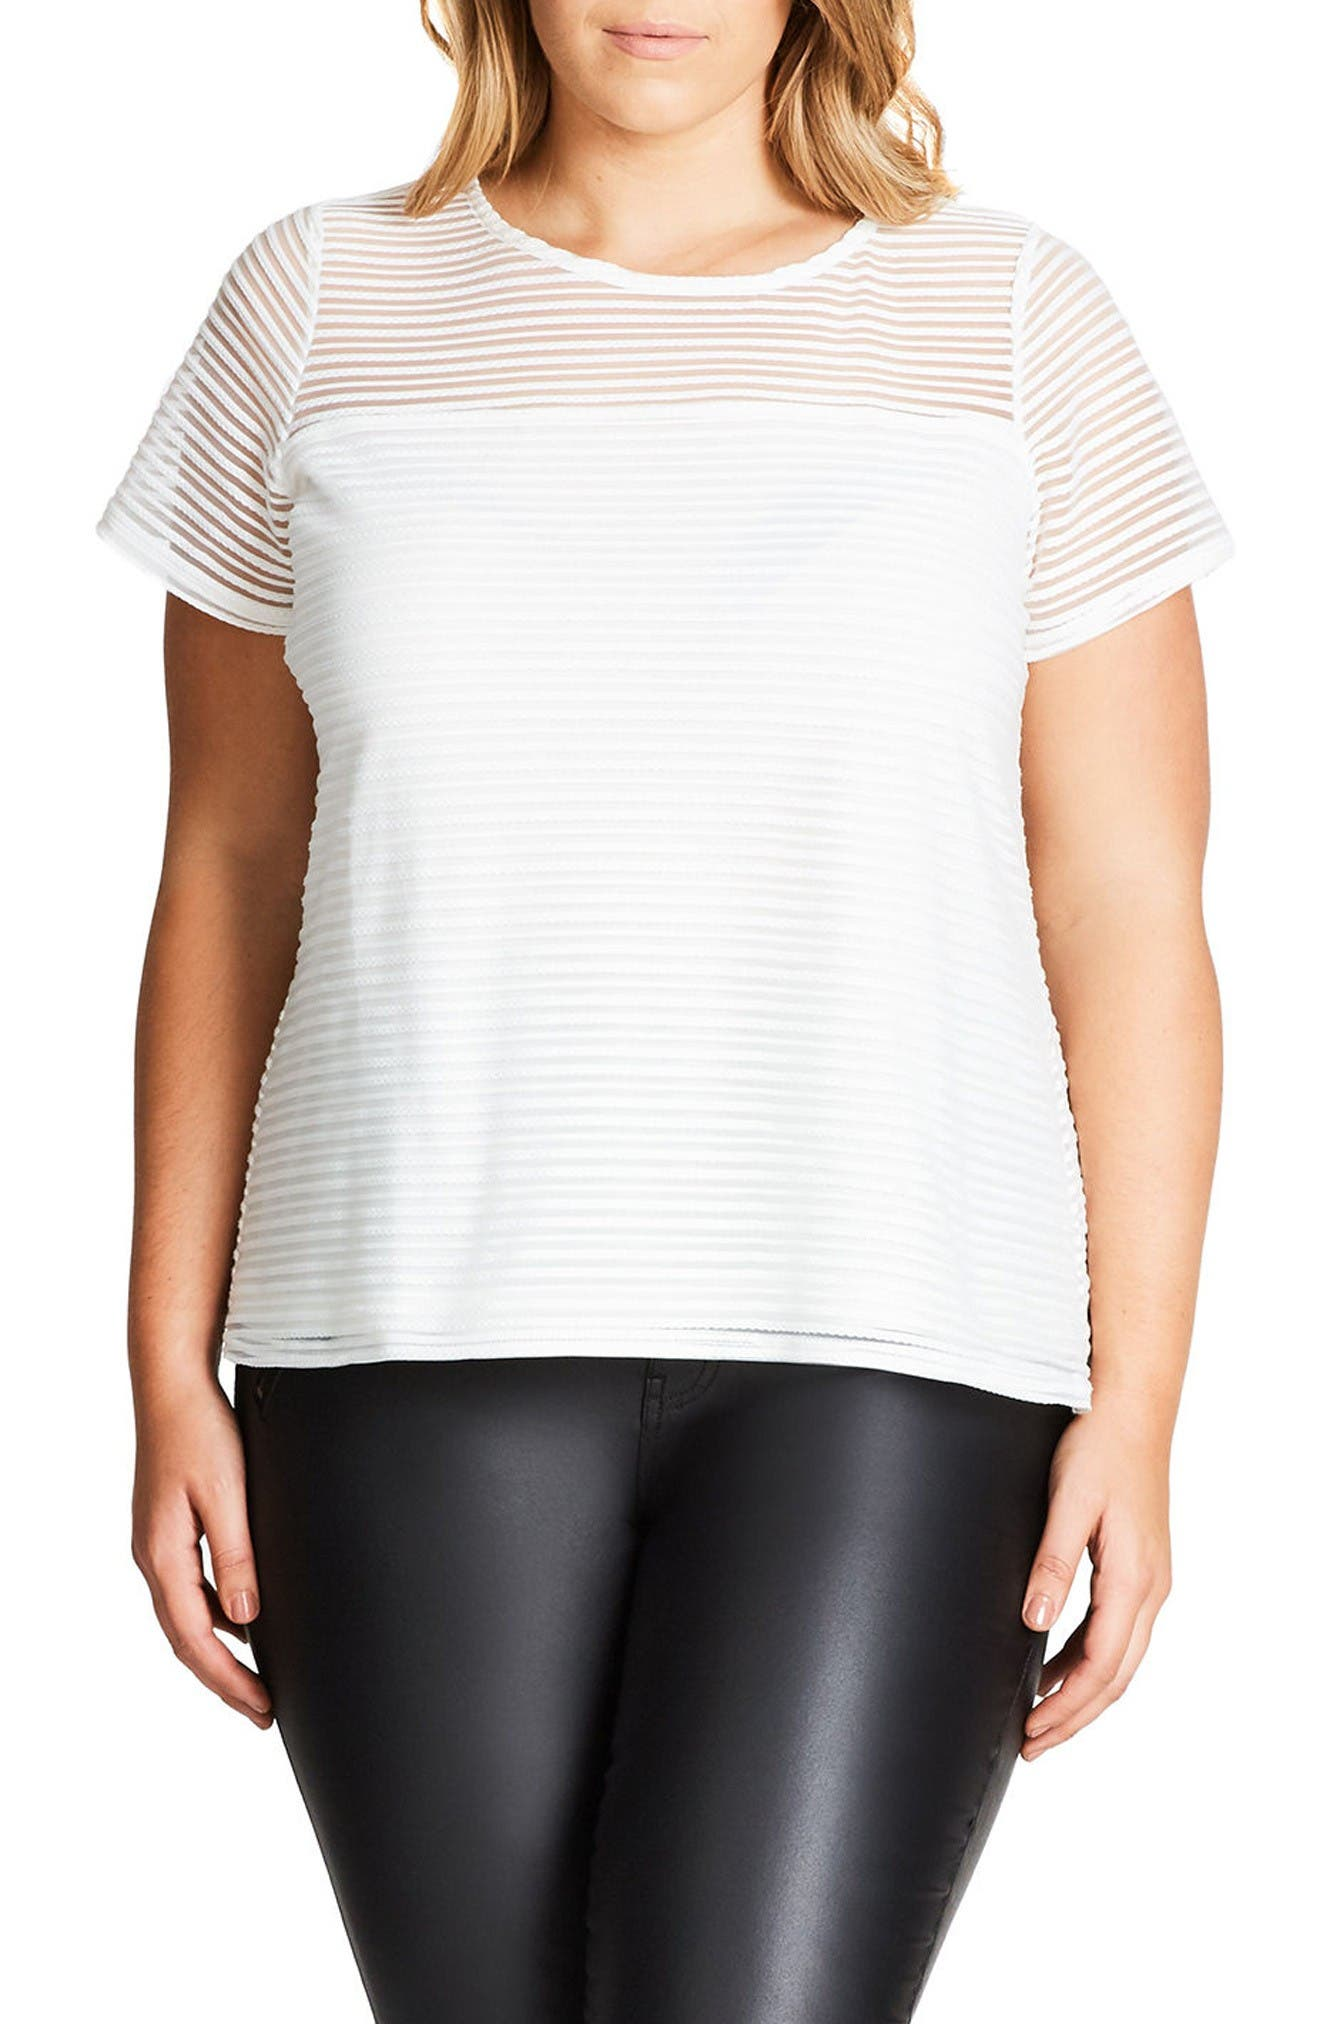 Alternate Image 1 Selected - City Chic Shadow Heart Top (Plus Size)